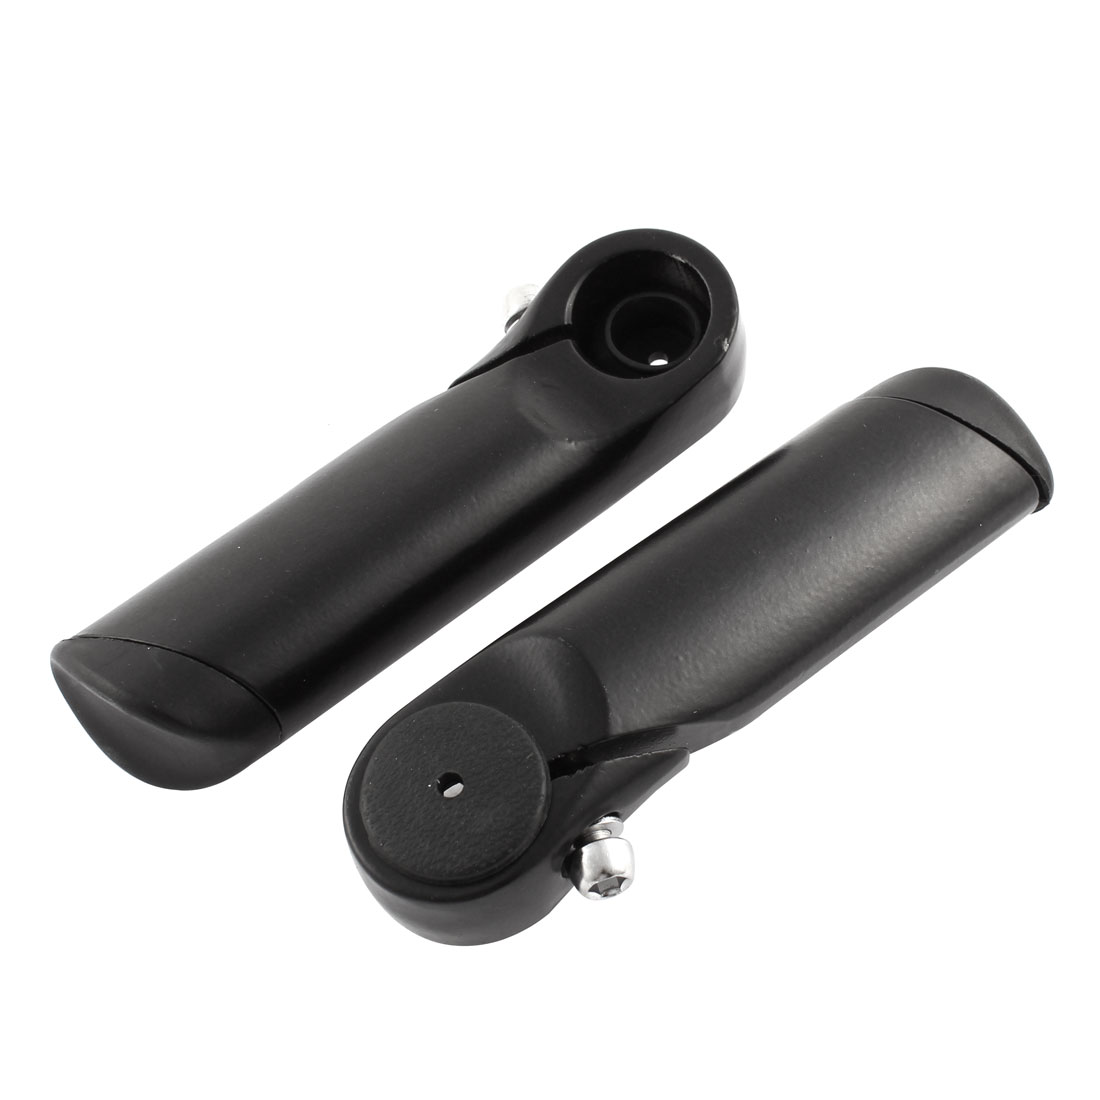 2PCS Black Mountain Bike Bicycle MTB Alloy Handle Bar Ends 12cm Length